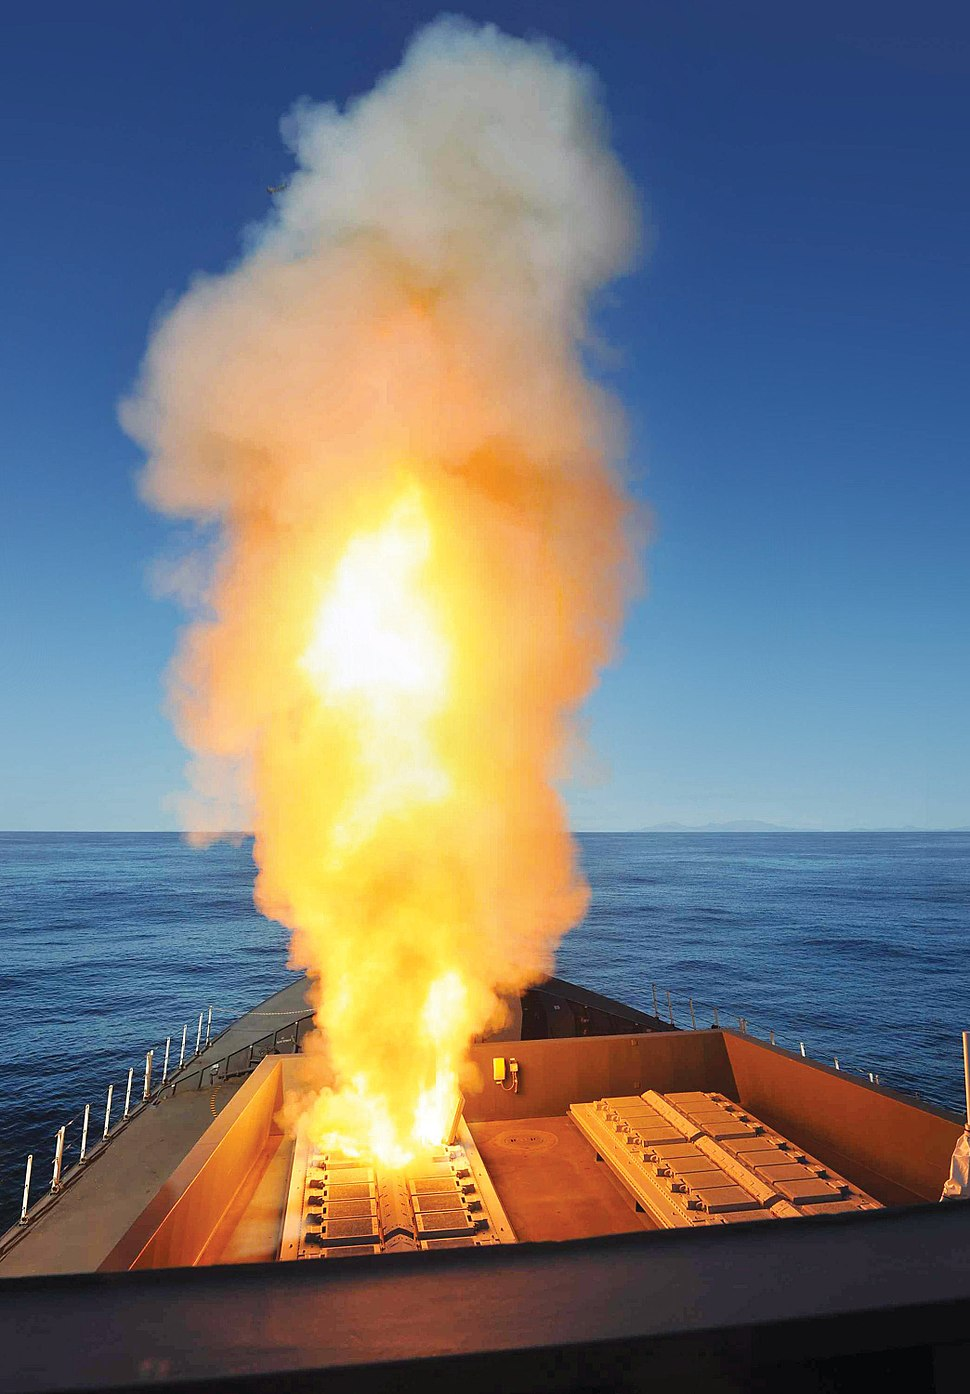 Defence Imagery - Missiles 19